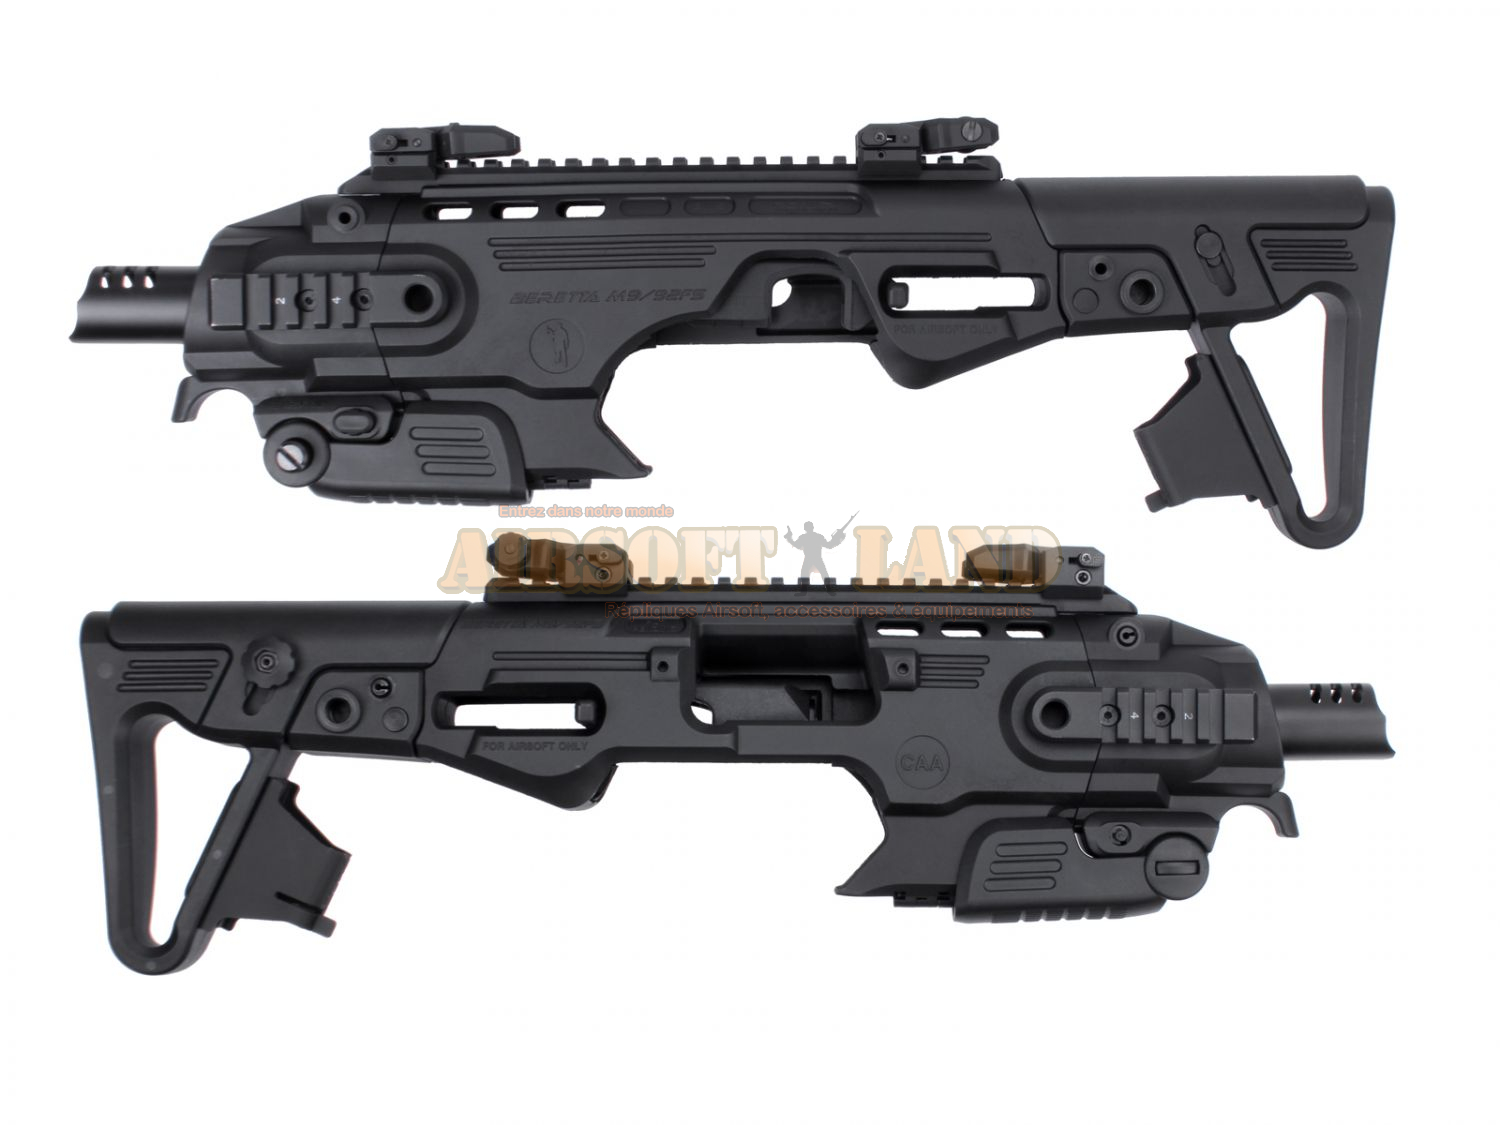 CONVERSION KIT RONI CAA AIRSOFT Beretta 92/ M9